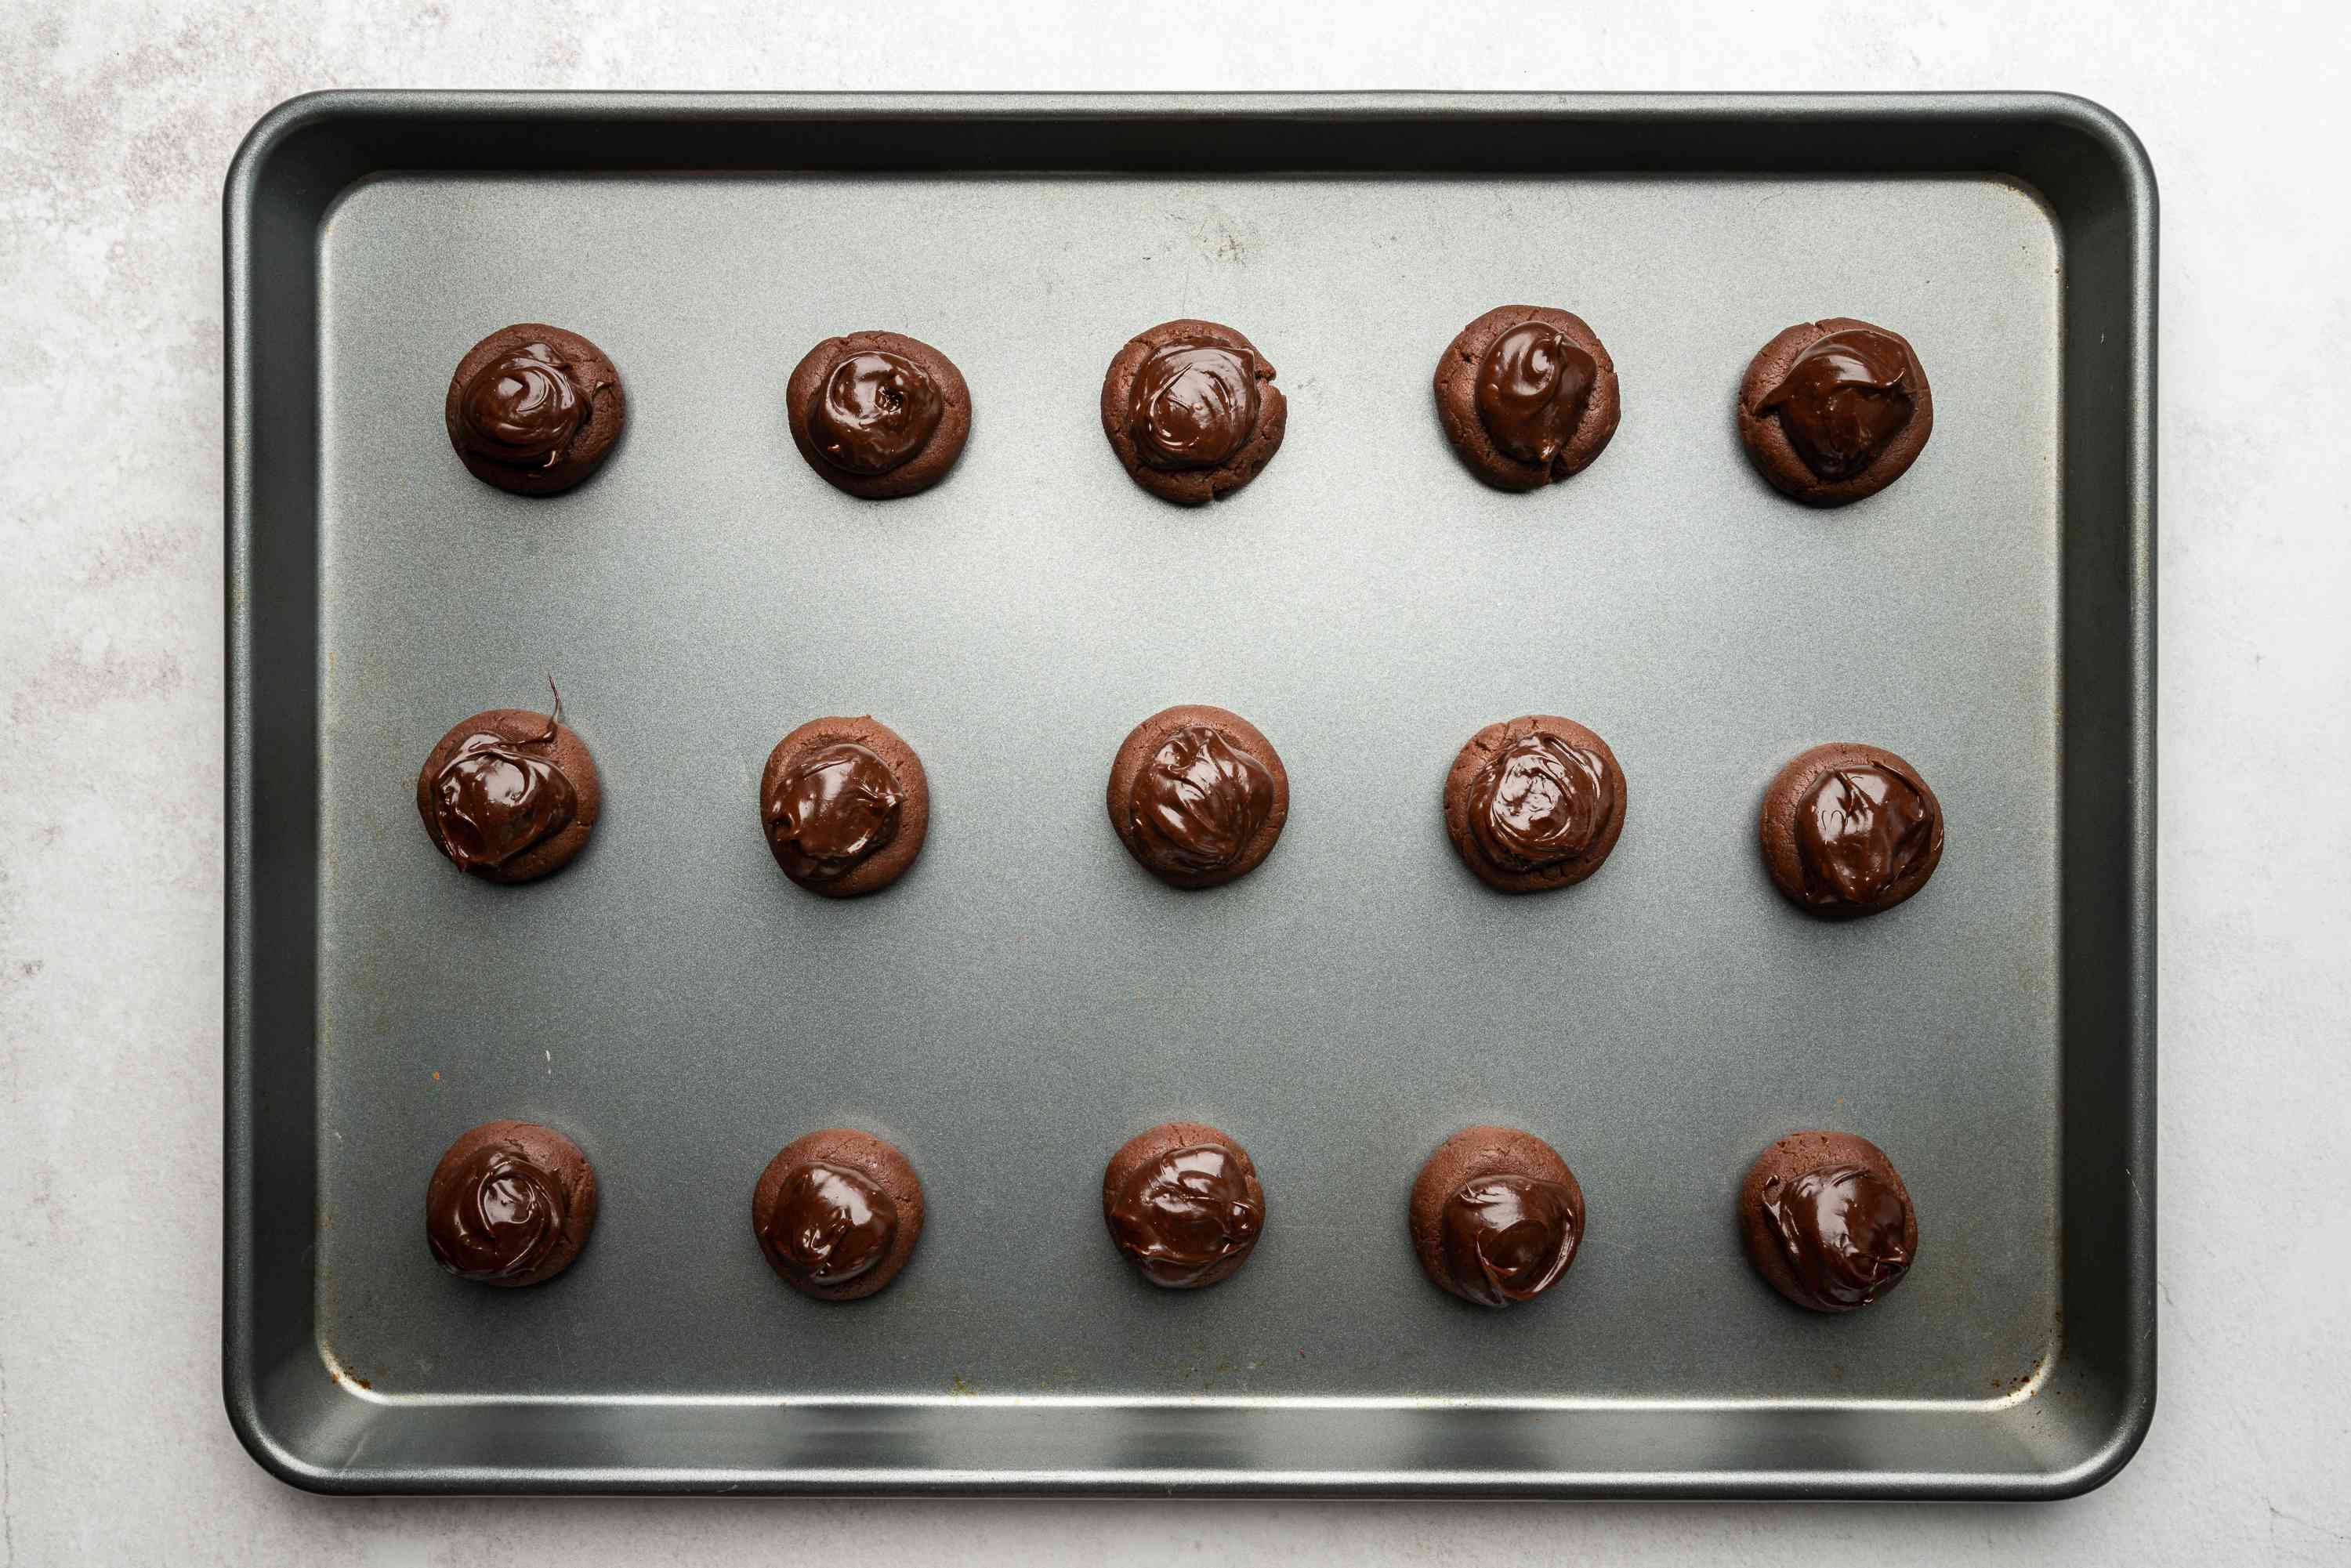 Jessica's Chocolate Covered Cherry Cookies on a baking sheet